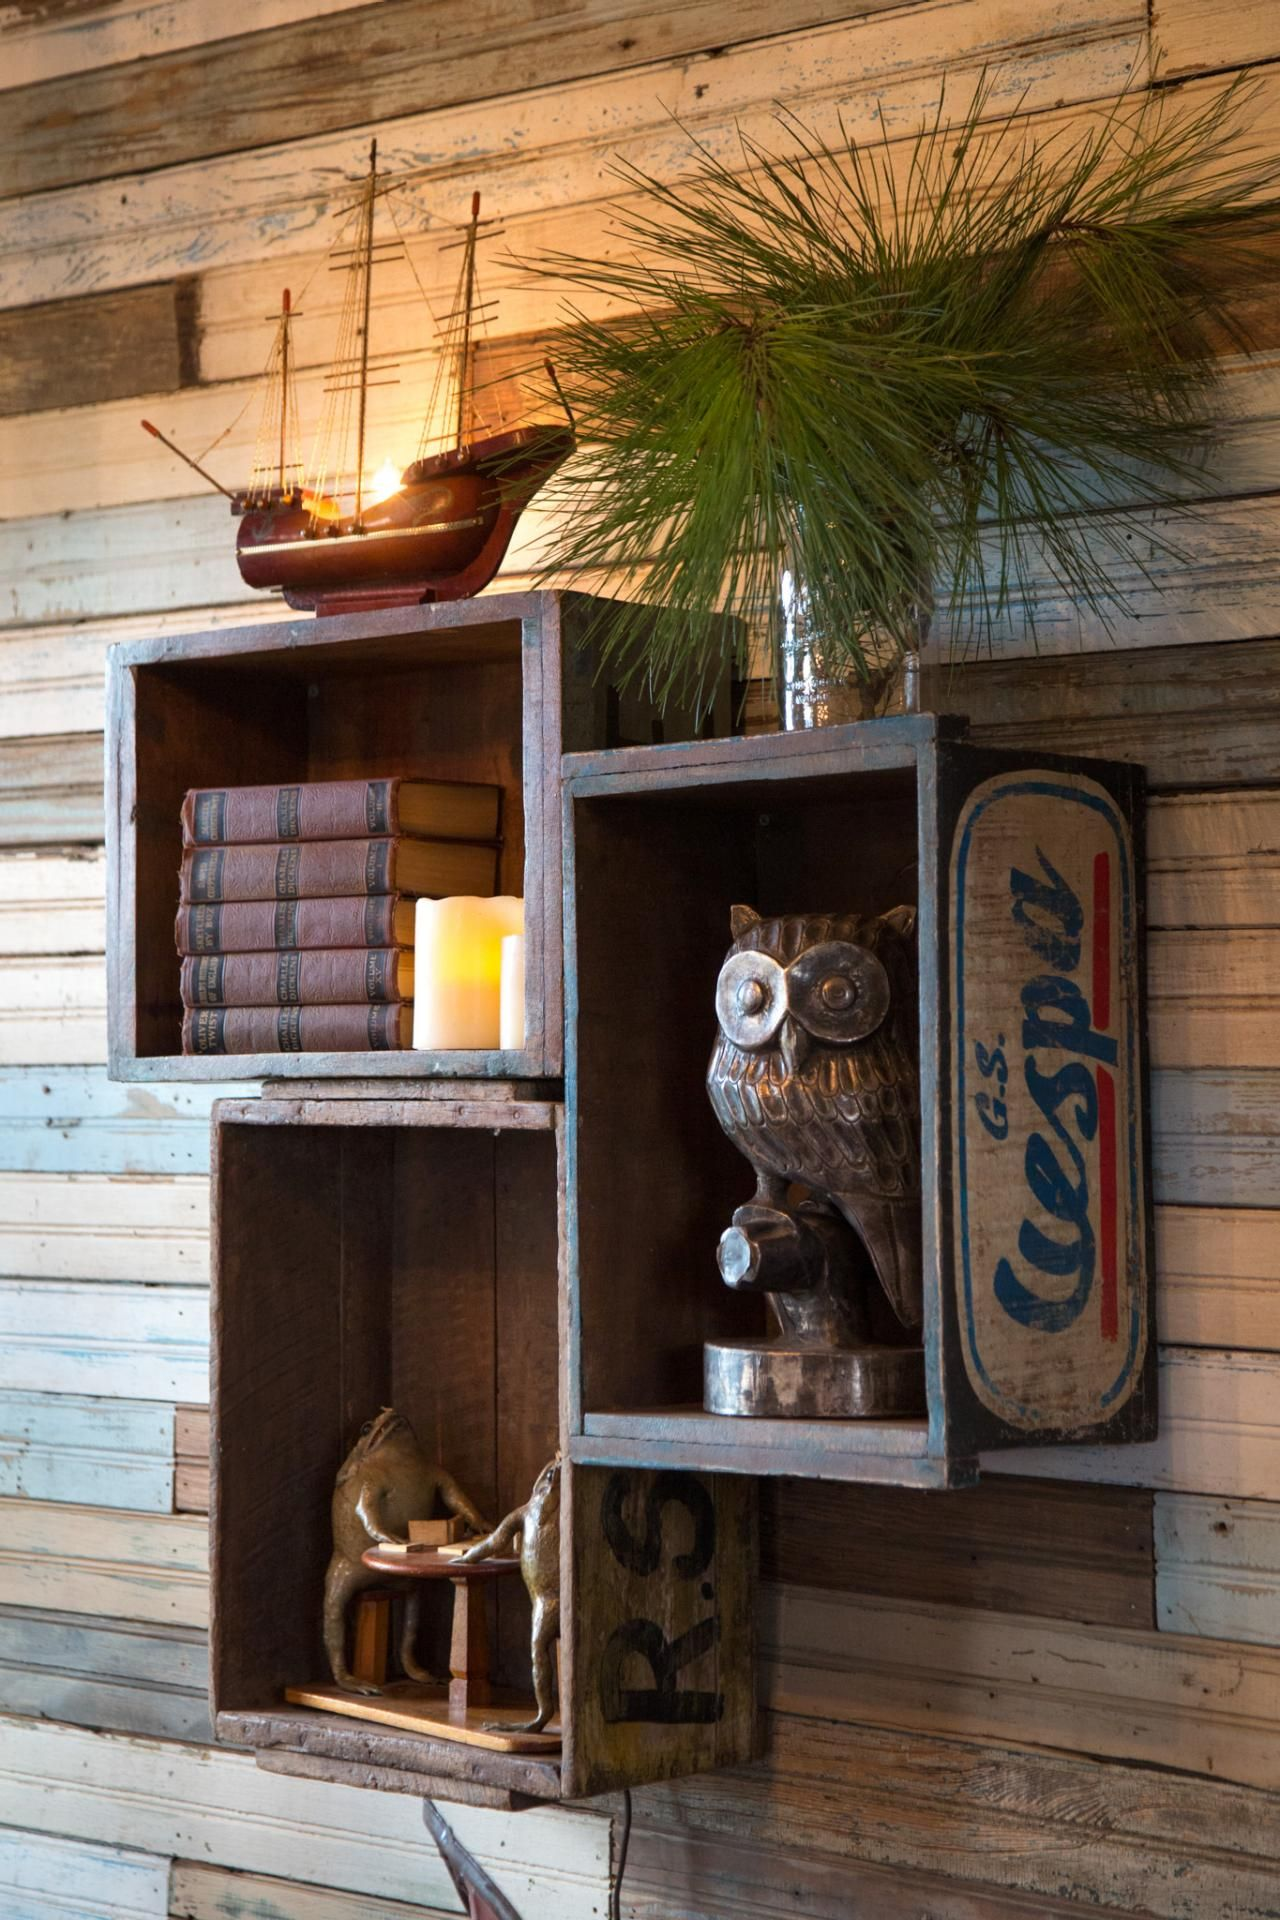 Ideas Creativas Para Decorar Con Cajas Madera Old Crates